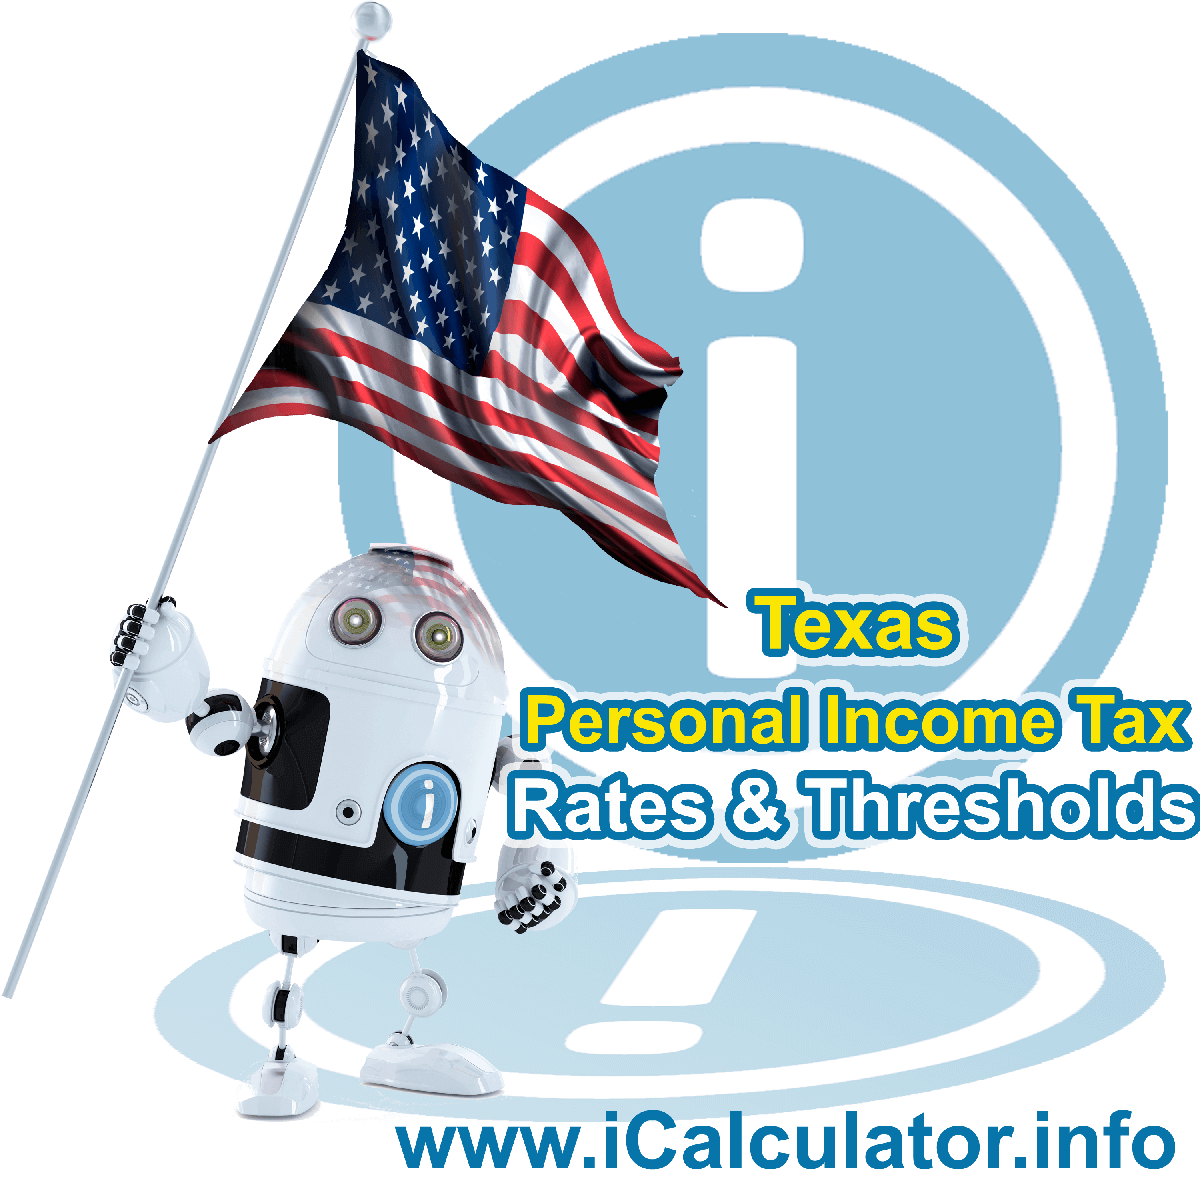 Texas State Tax Tables 2017. This image displays details of the Texas State Tax Tables for the 2017 tax return year which is provided in support of the 2017 US Tax Calculator